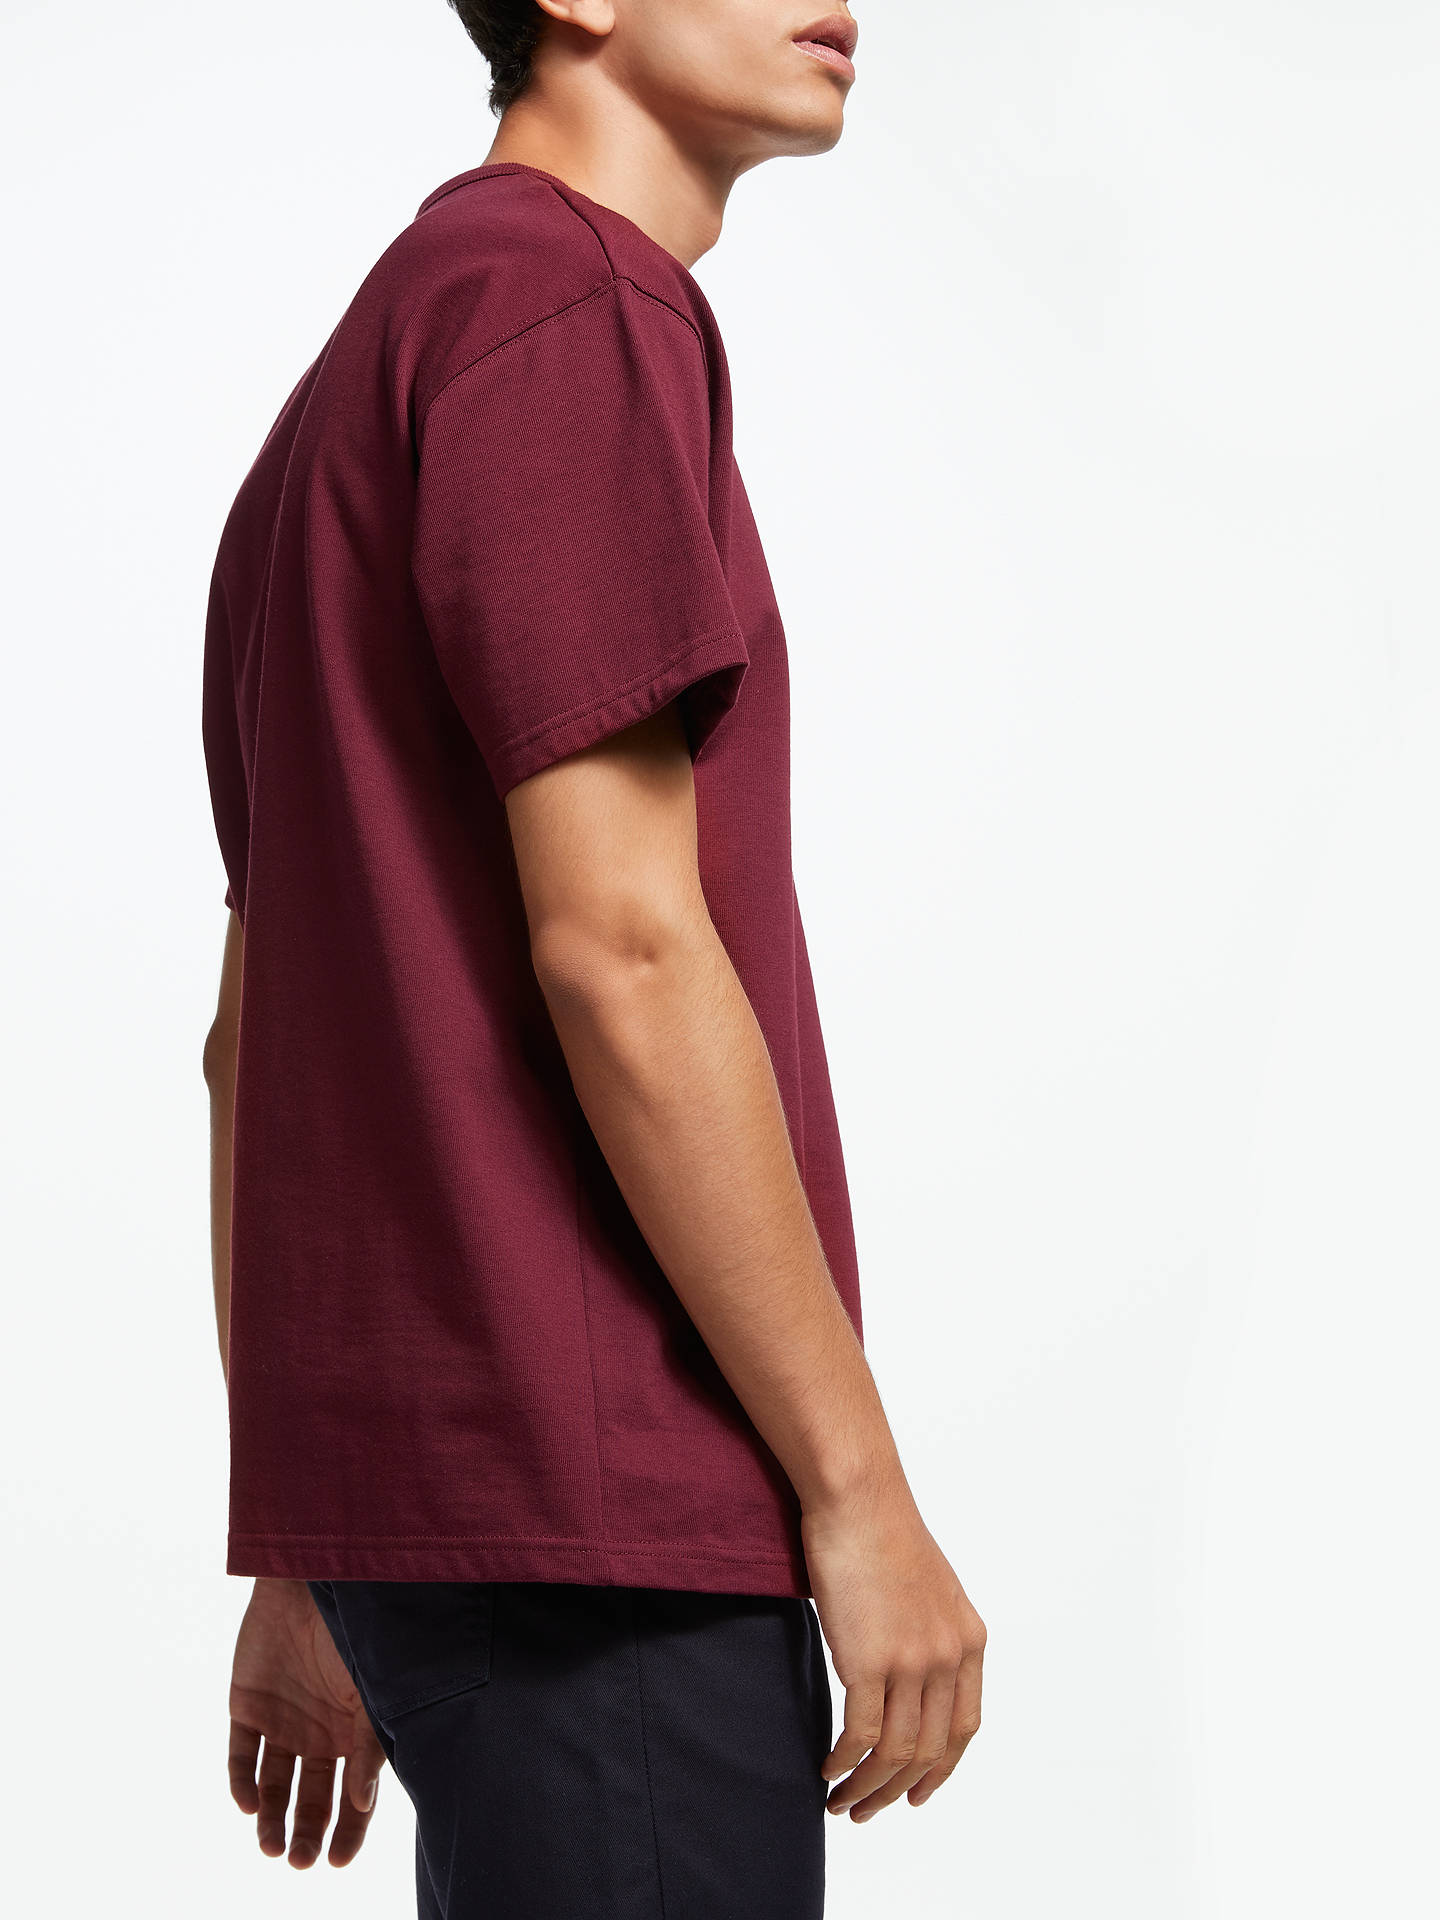 Buy Carhartt WIP Spill Logo T-Shirt, Mulberry, M Online at johnlewis.com